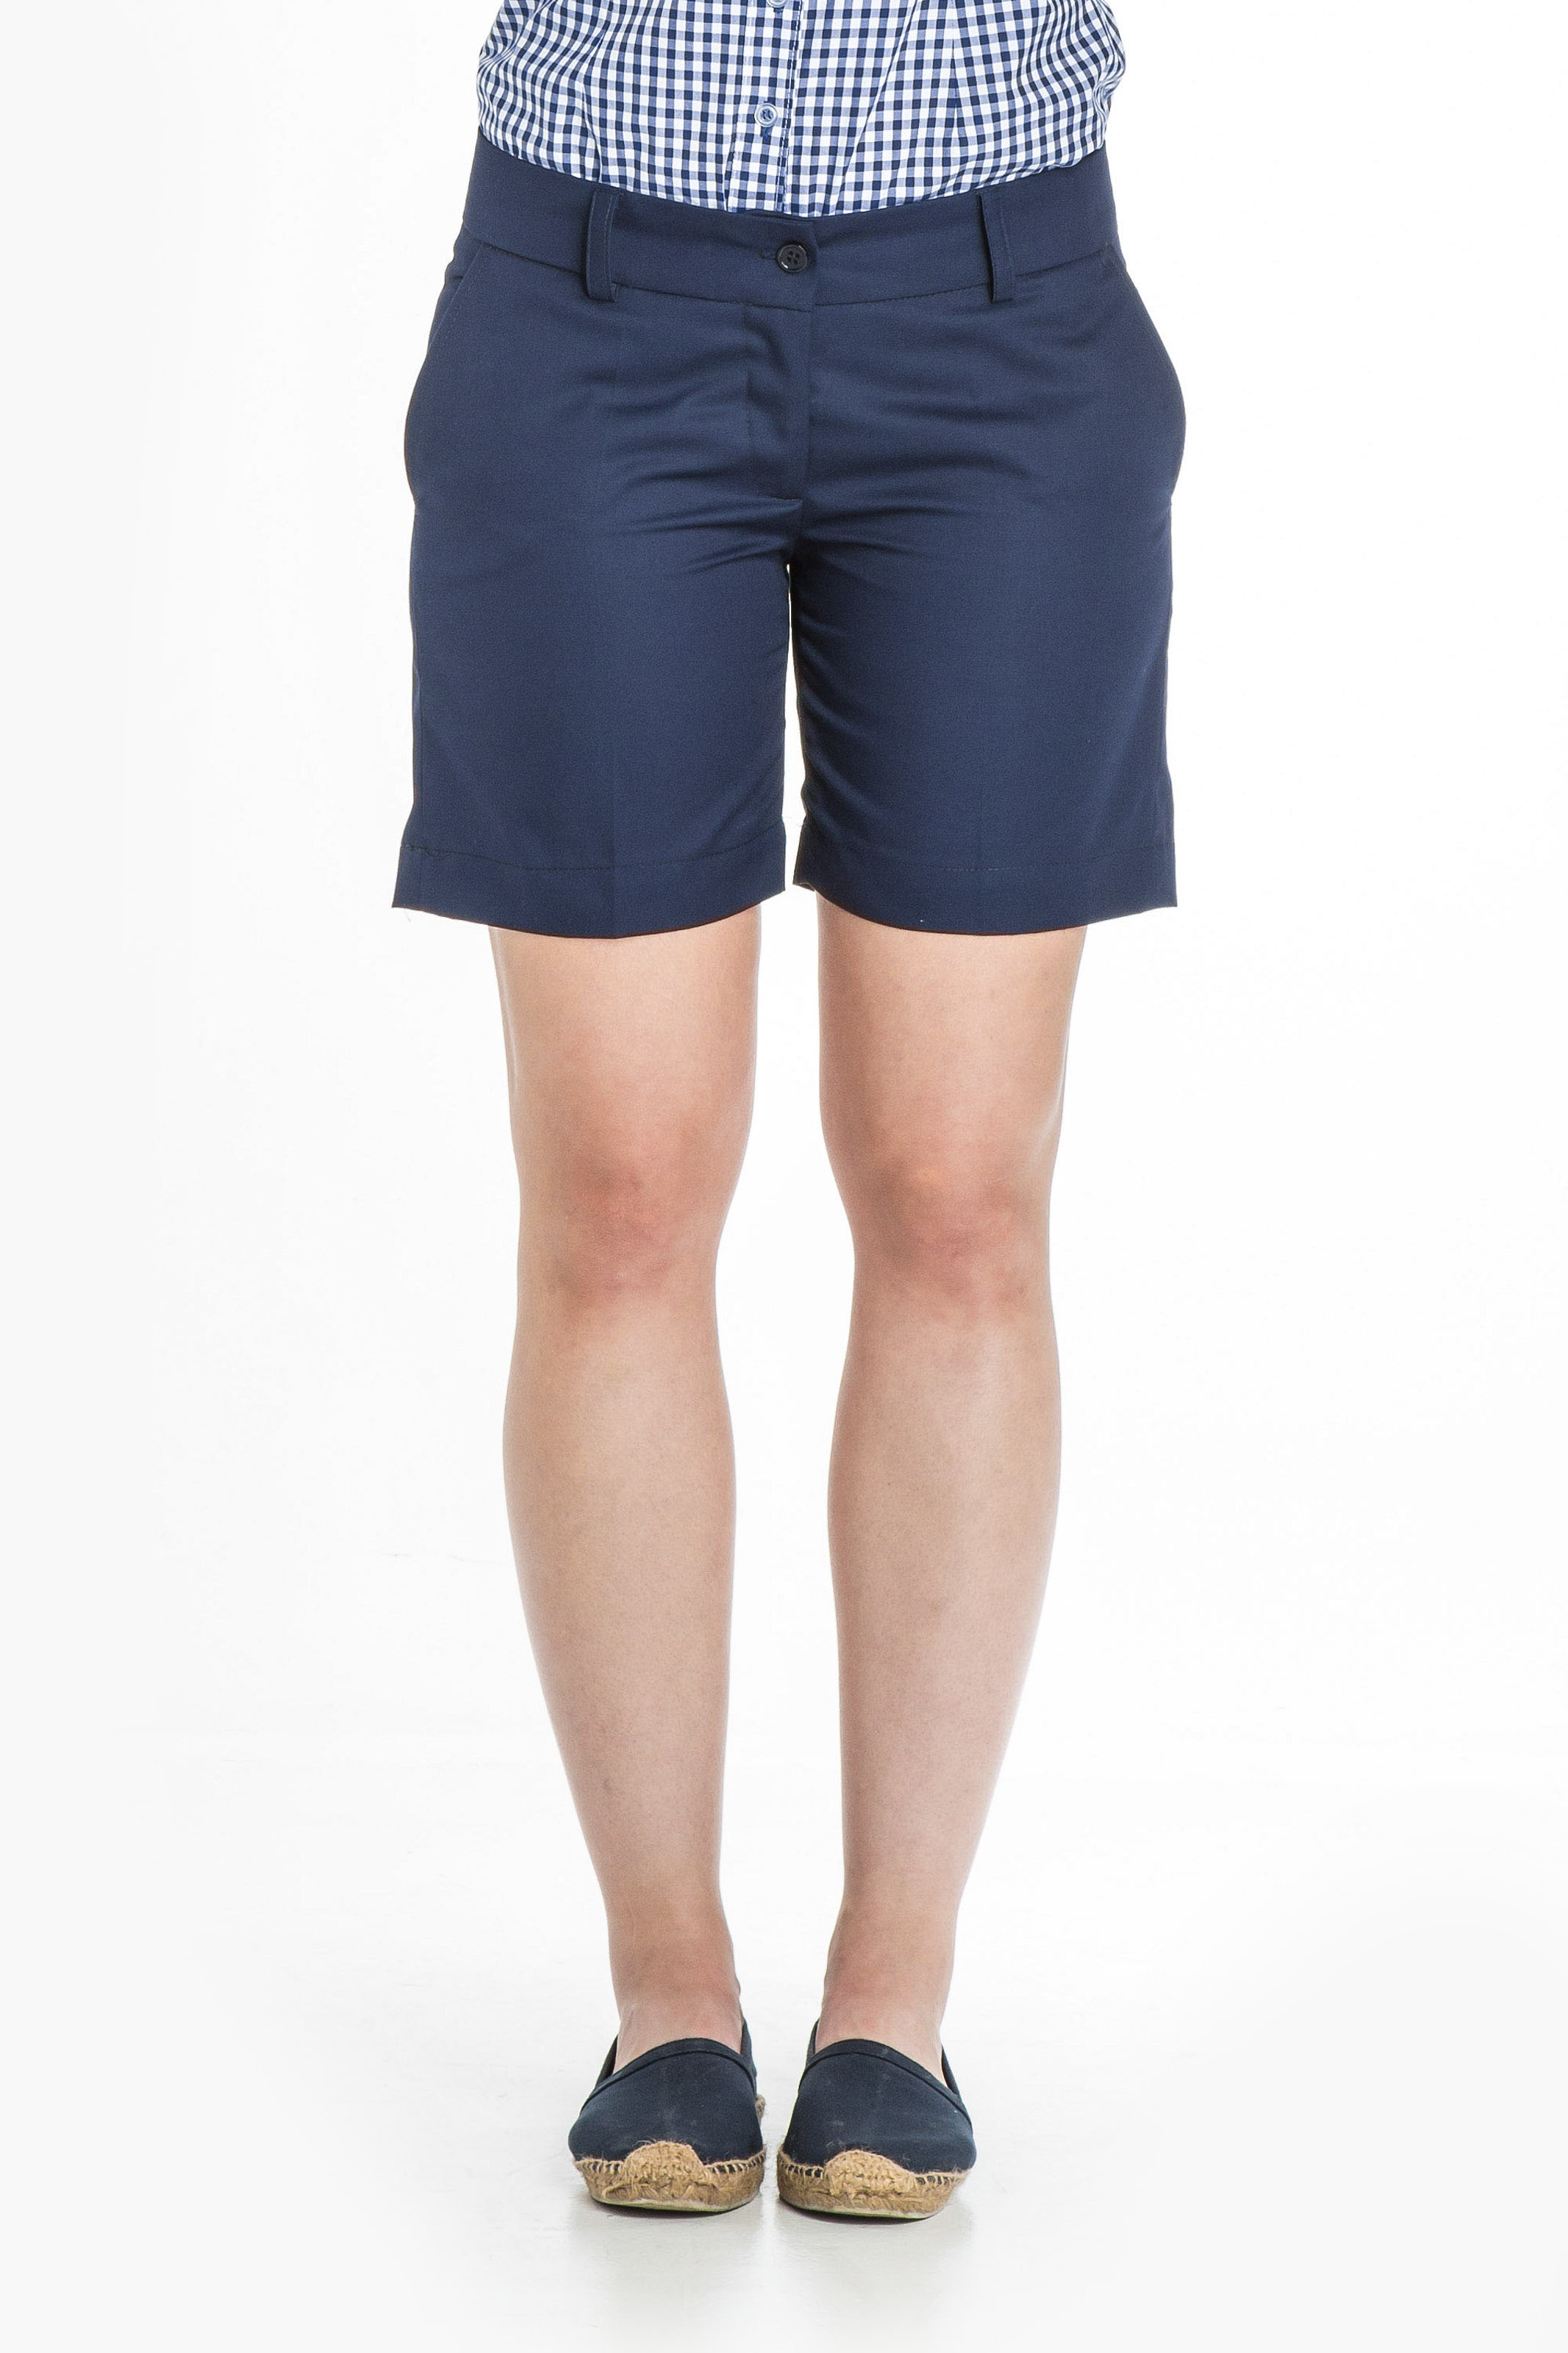 Aris Uniforms-FV01-Women's Shorts